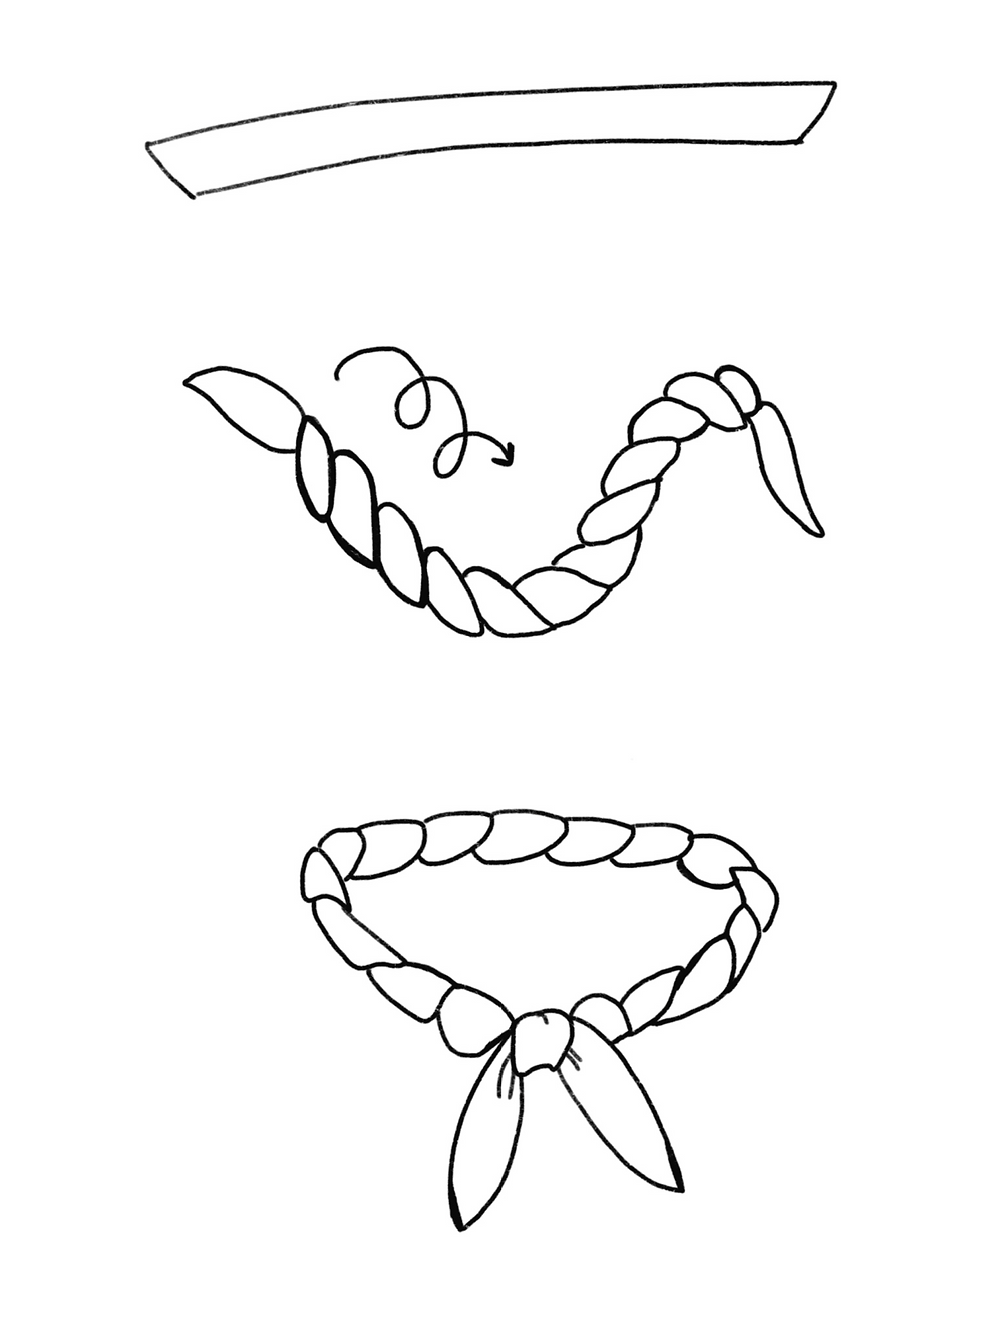 CARMENTA - drawing twisted knot tutorial, Costa Rica design and art printed on fabric